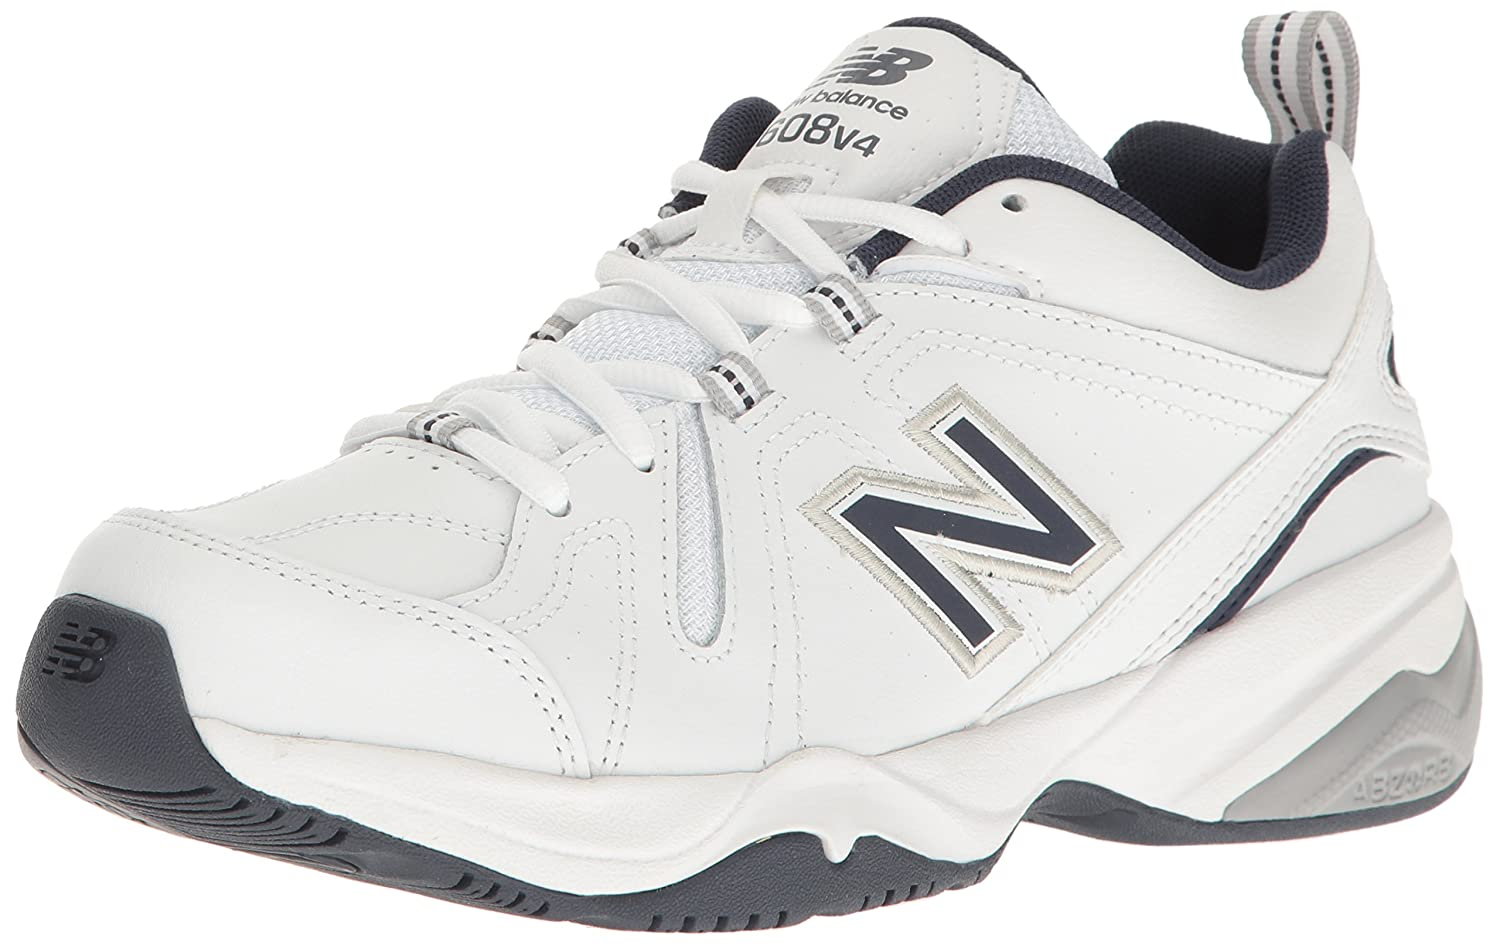 激安店舗 New Balance Men's 10.5 Mx608 Ankle-High Suede Running New Shoe B00IYBC802 2E ホワイト/ネイビー 10.5 2E US 10.5 2E US|ホワイト/ネイビー, MiSAIL:ec6af31b --- svecha37.ru